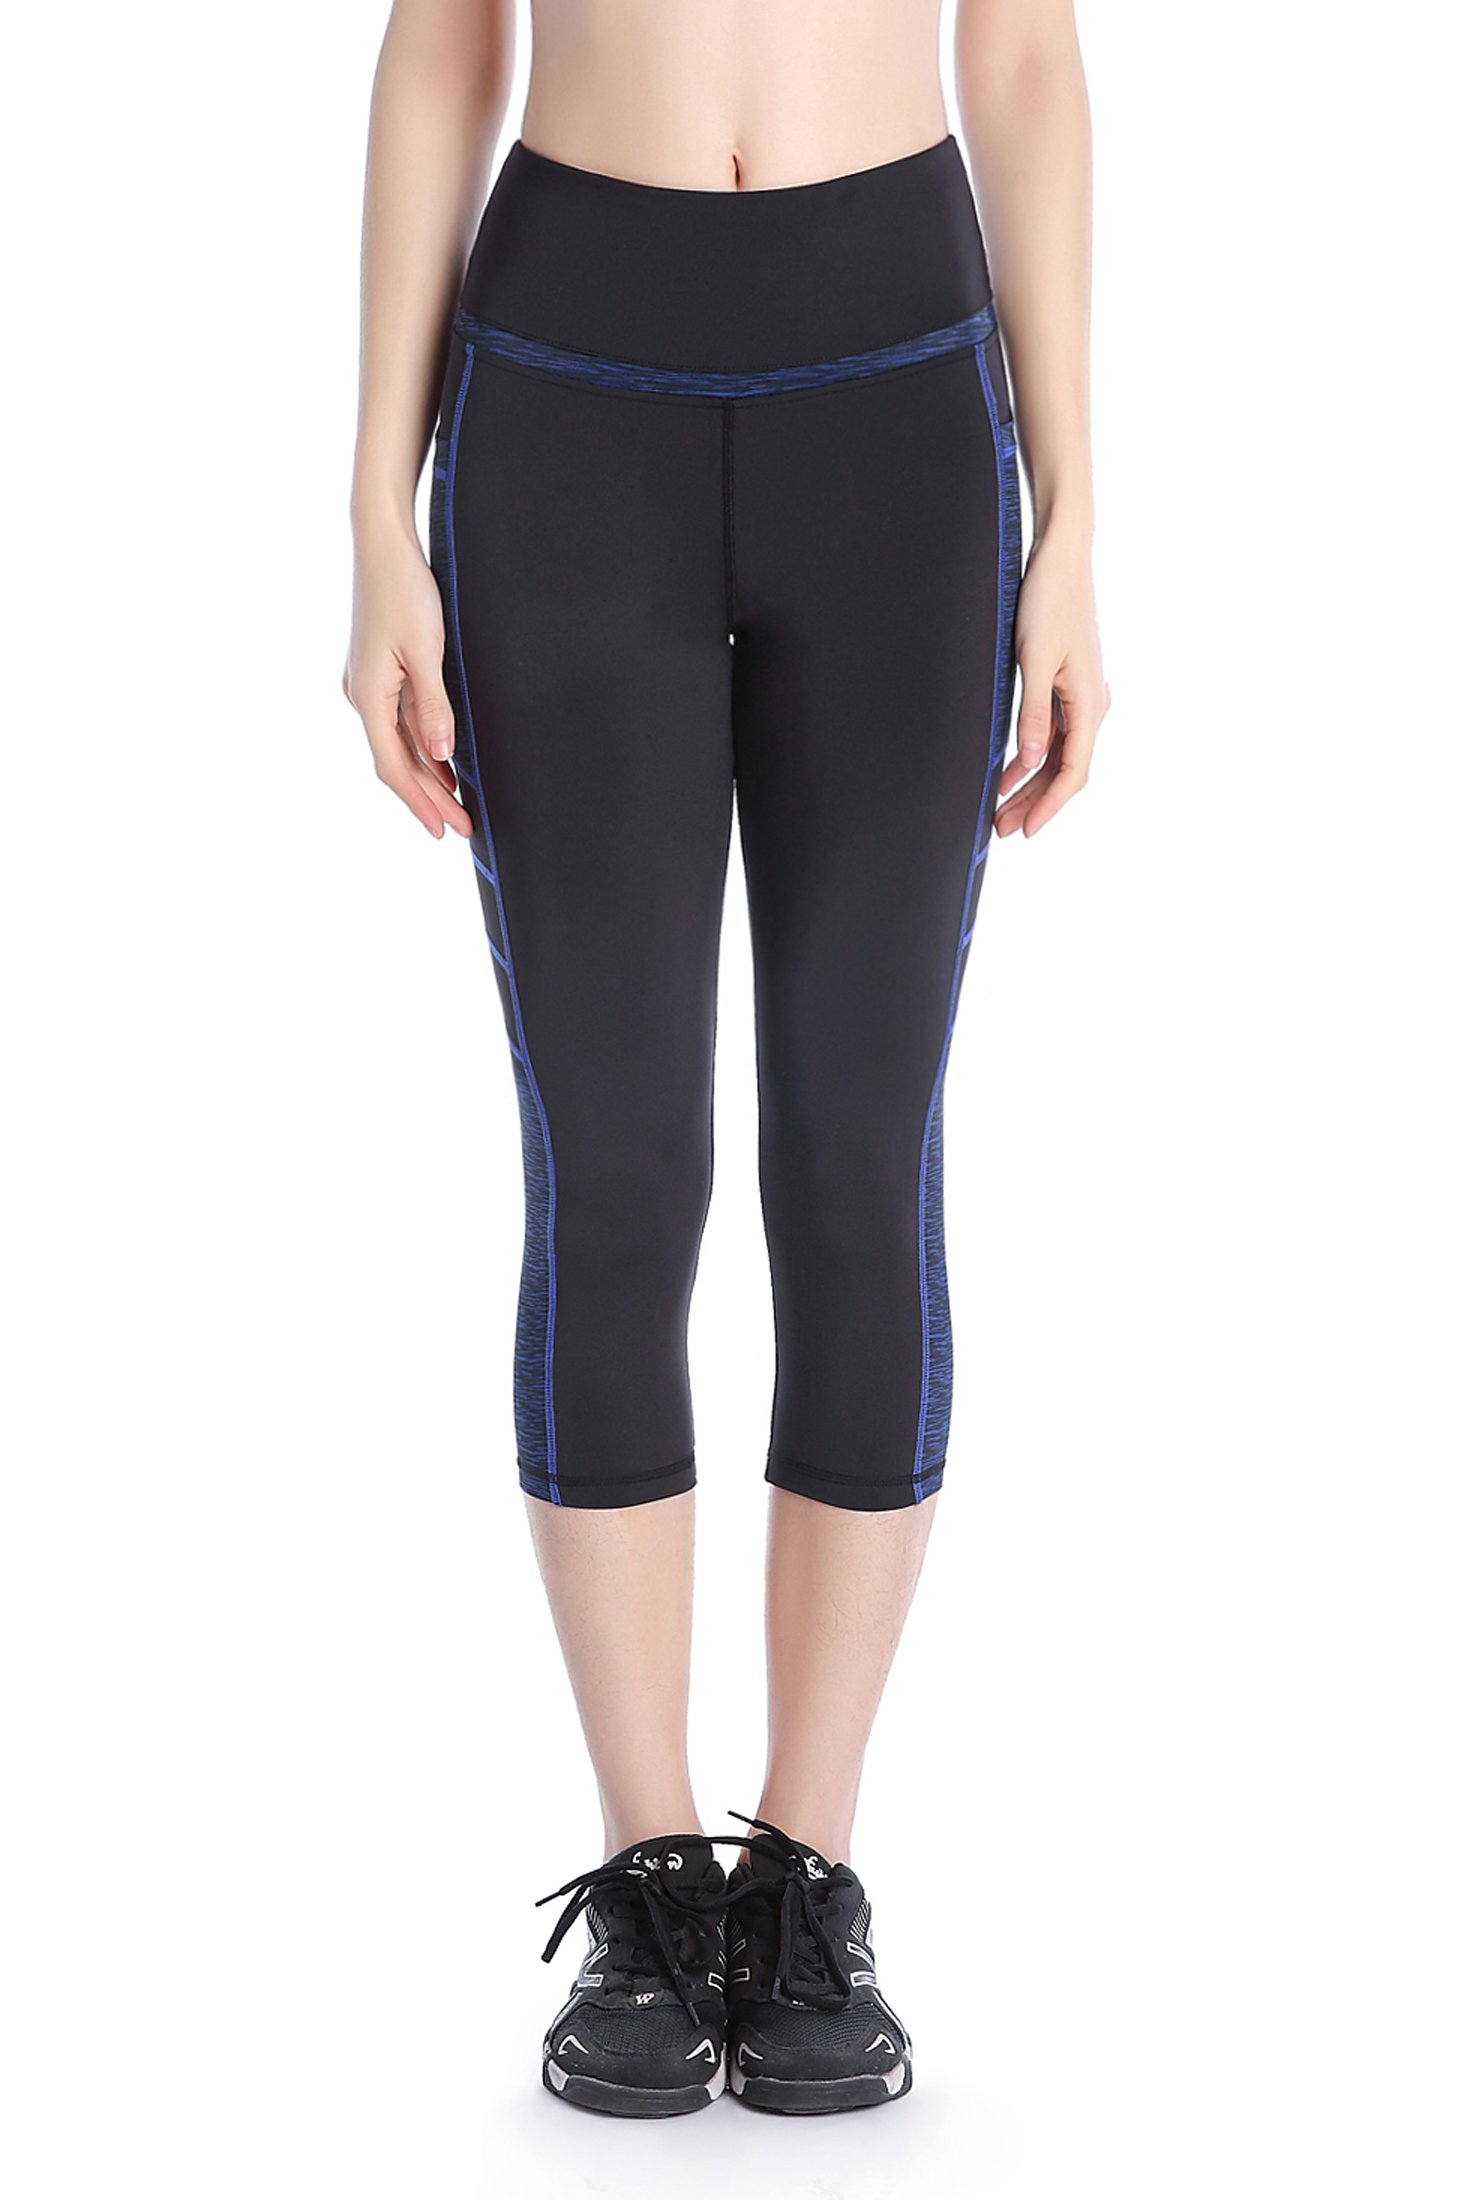 Picotee Women's Yoga Capri Pants Workout Running Pants Leggings High Waist with Pocket (M, Blue)